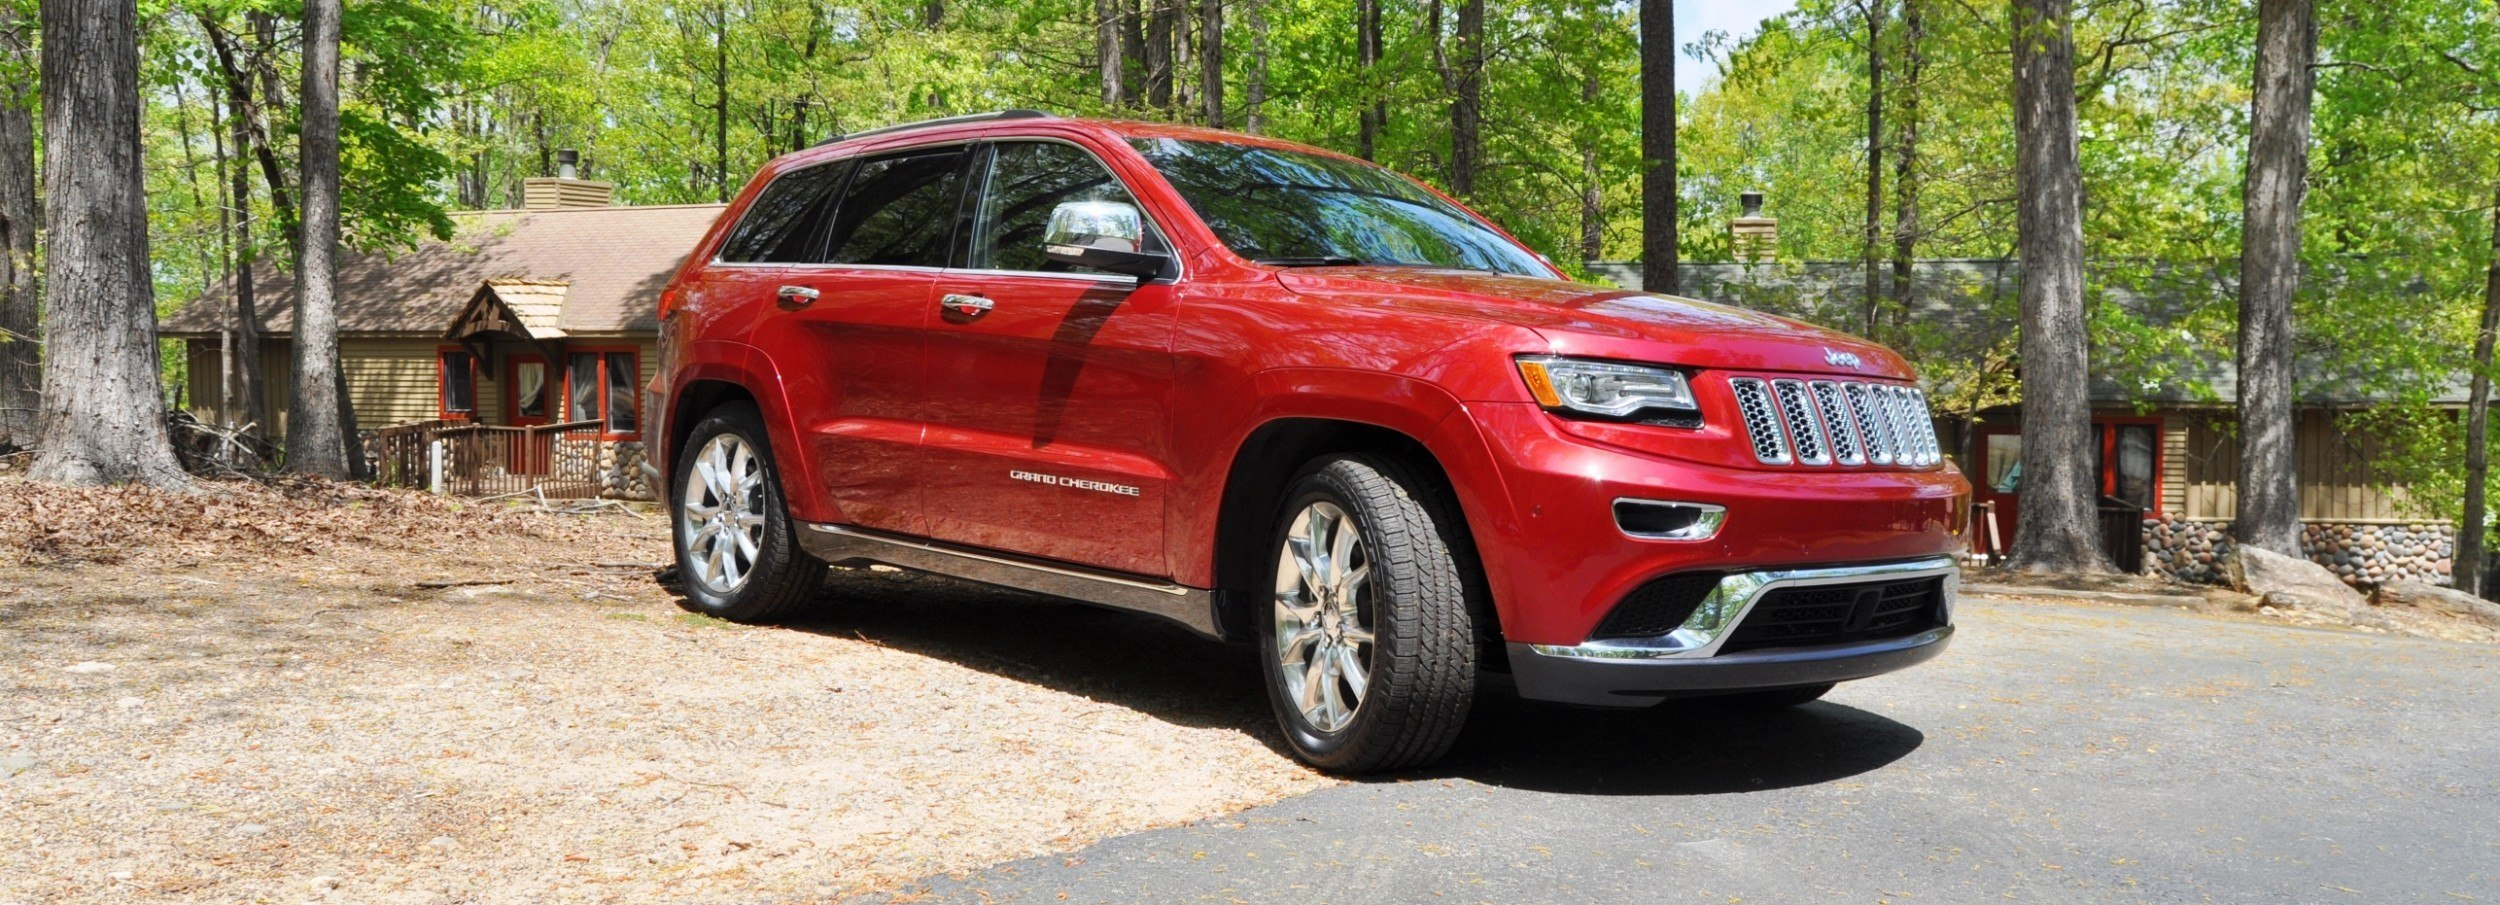 ... Car Revs Daily.com Road Test Review   2014 Jeep Grand Cherokee Summit  ...